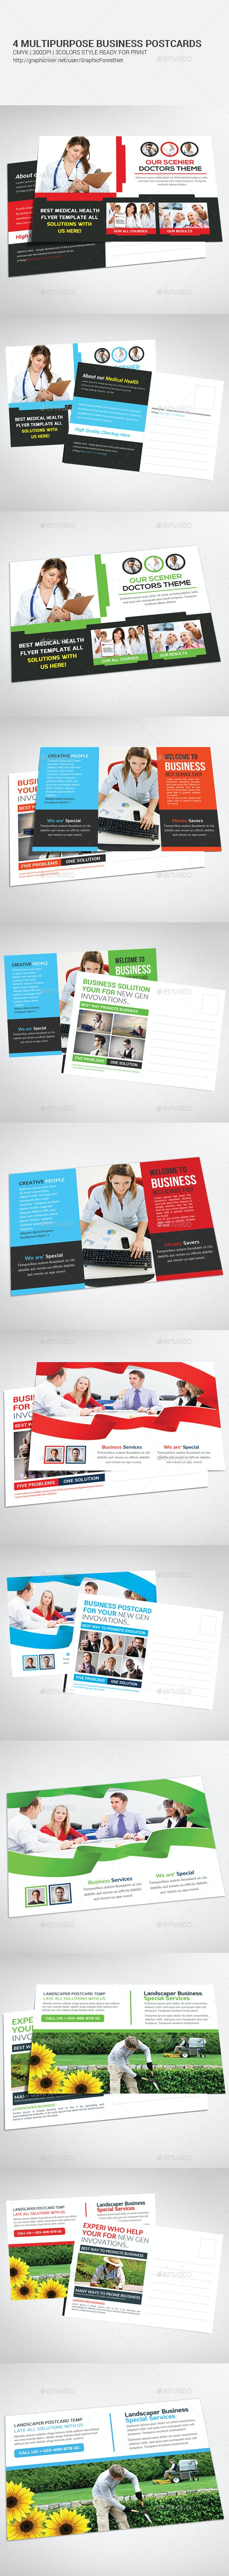 4 Multipurpose Business Postcards Templates - Cards & Invites Print Templates